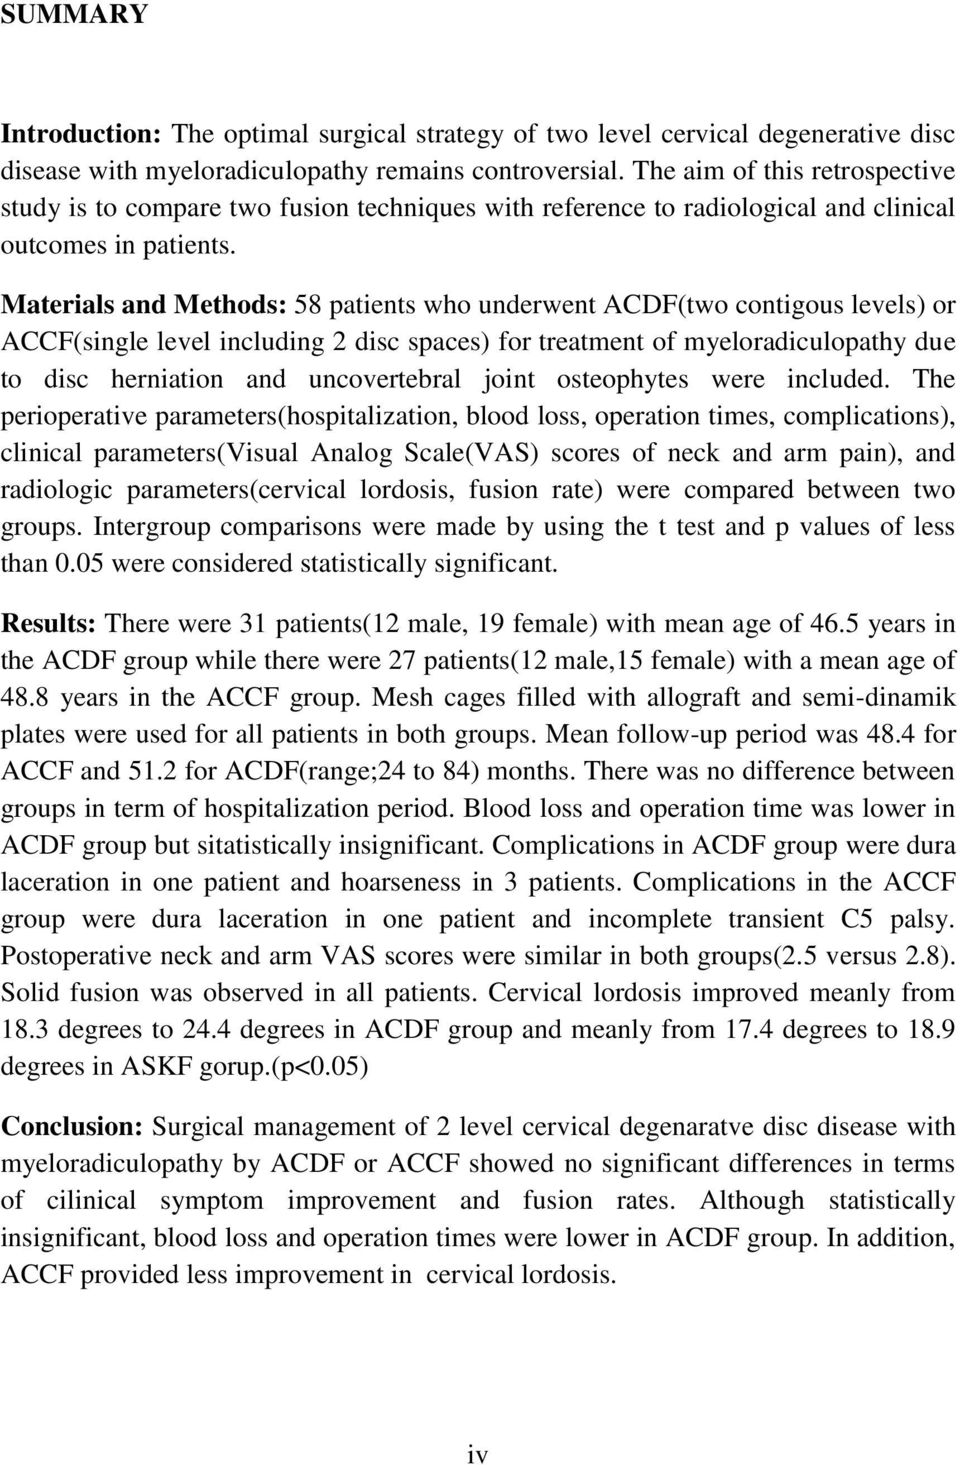 Materials and Methods: 58 patients who underwent ACDF(two contigous levels) or ACCF(single level including 2 disc spaces) for treatment of myeloradiculopathy due to disc herniation and uncovertebral